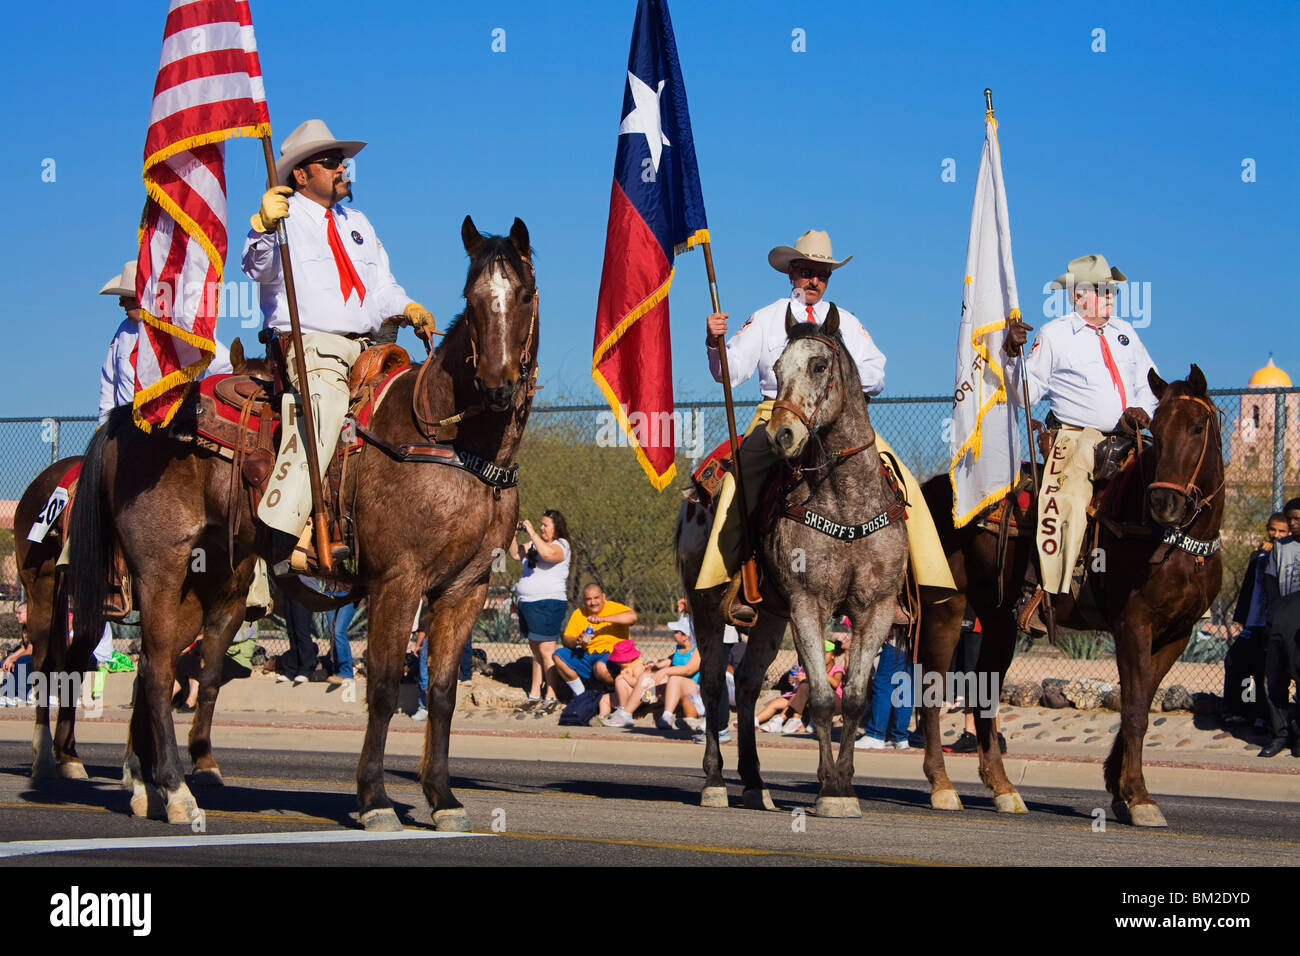 el paso sheriff s posse tucson rodeo parade tucson arizona usa stock photo alamy https www alamy com stock photo el paso sheriffs posse tucson rodeo parade tucson arizona usa 29558353 html